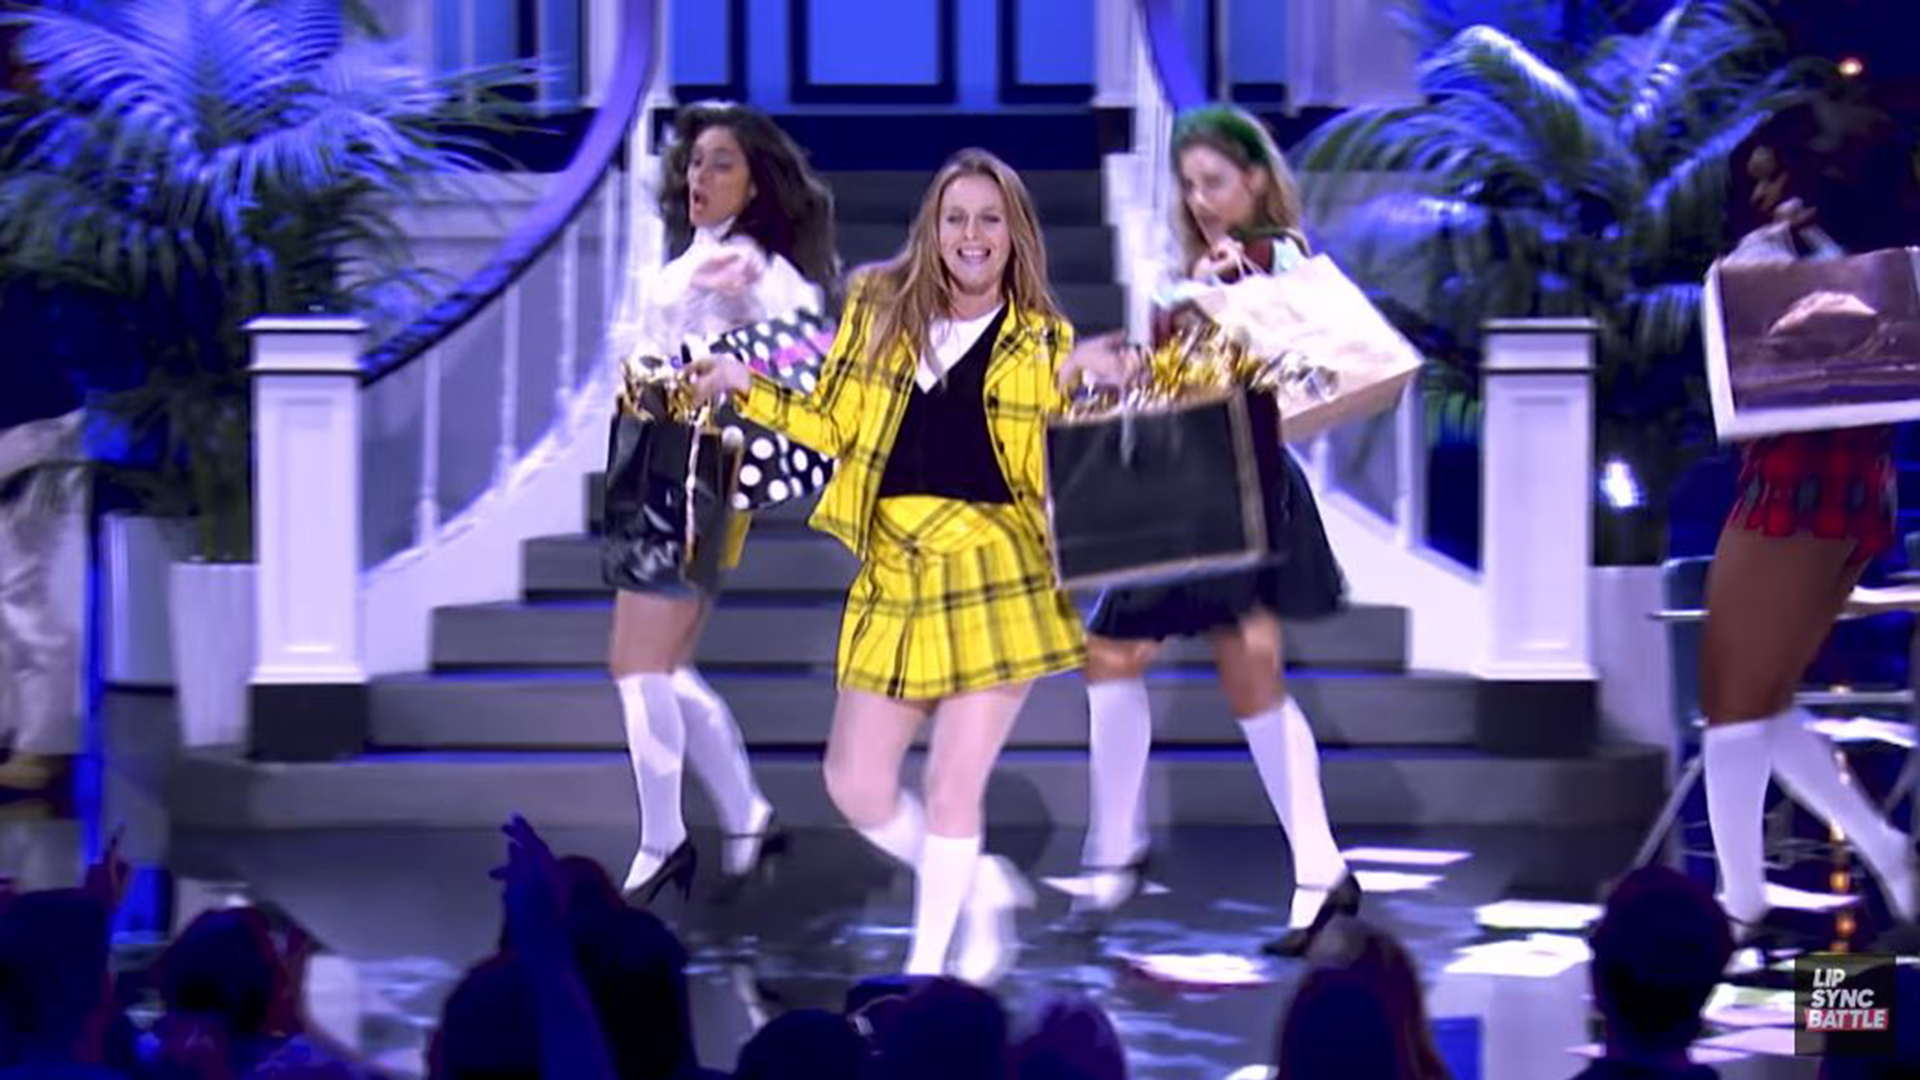 Alicia Silverstone performs as 'Clueless' character on 'Lip